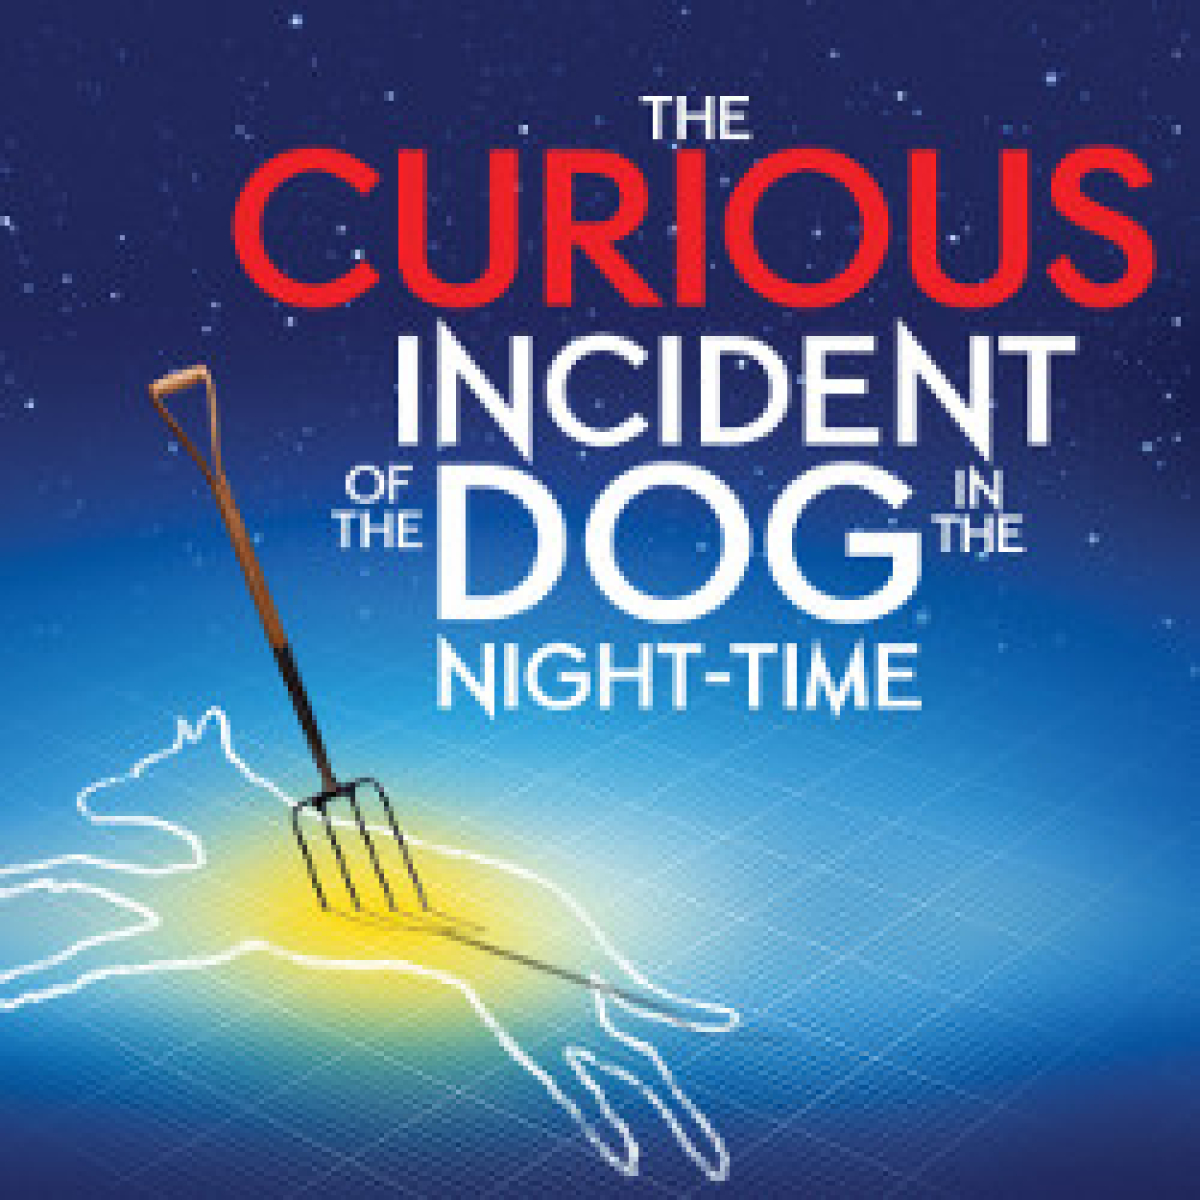 curious incident of the dog isolation Free summary of curious incident of the dog in the night time by mark haddon complete study guide including character descriptions, study questions, chapter summaries, and more by thebestnotescom.